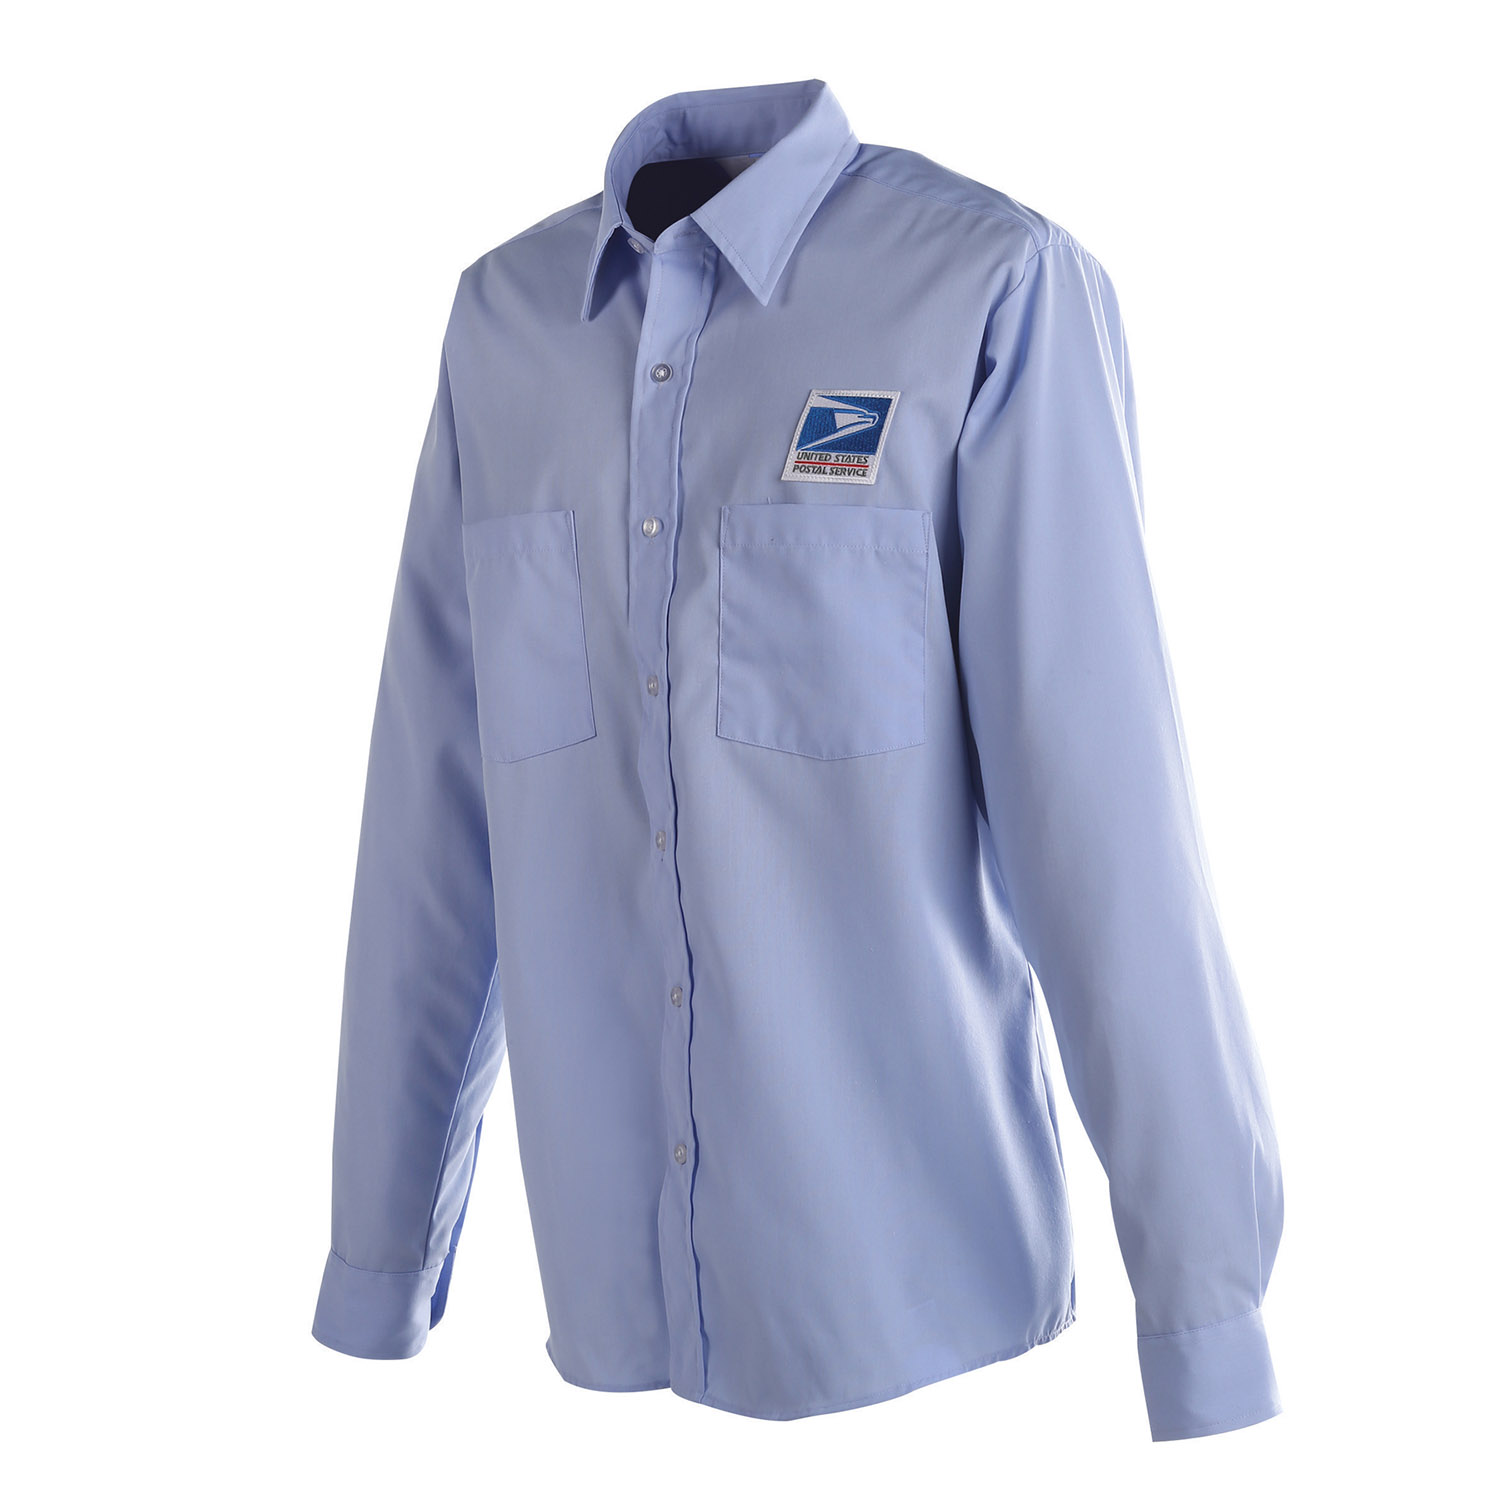 Postal Uniform Shirt Mens Long Sleeve For Letter Carriers